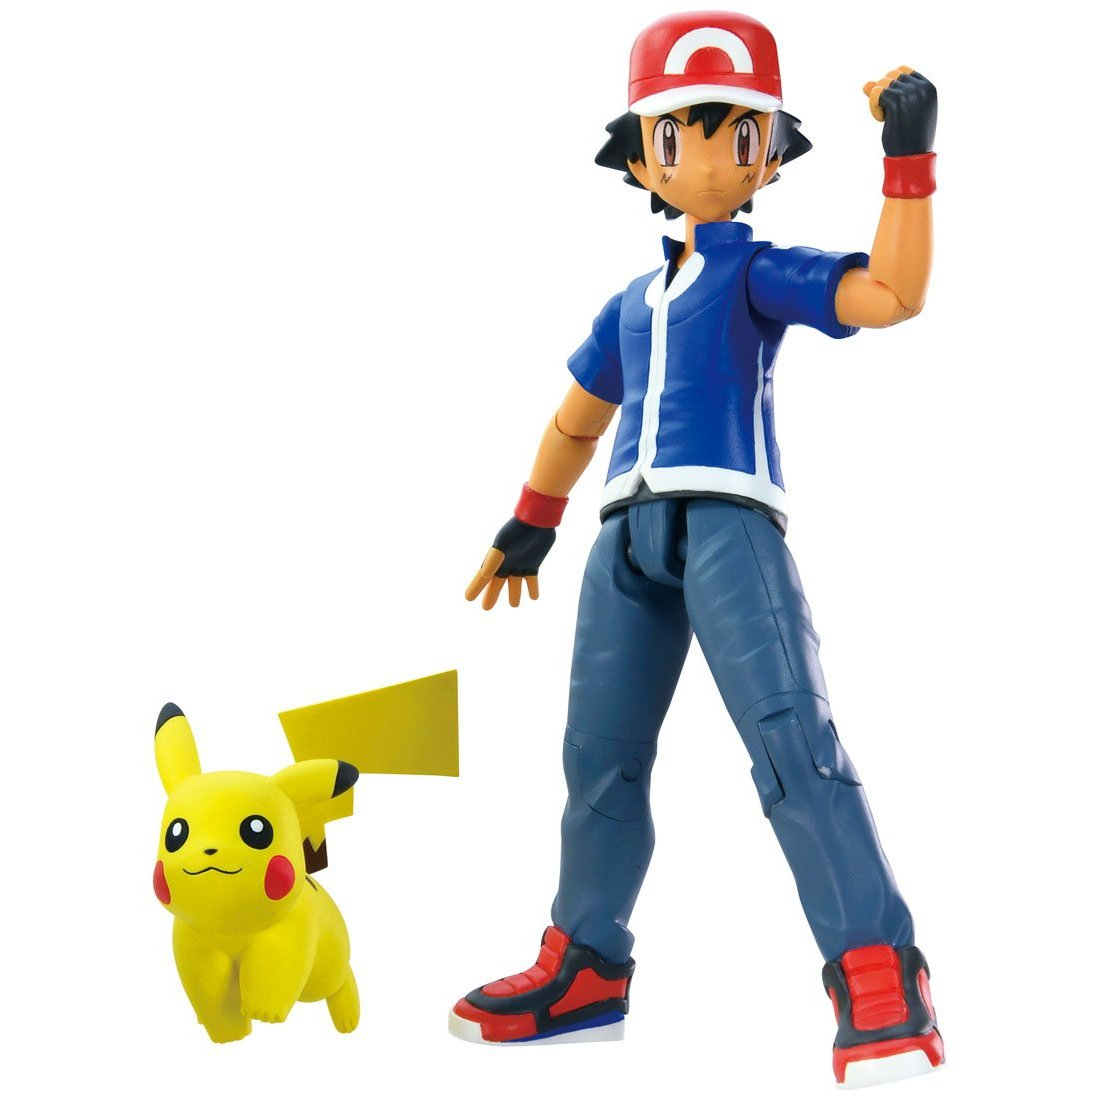 Pokemon Monster Collection Ash Ketchum Satoshi Pikachu Set